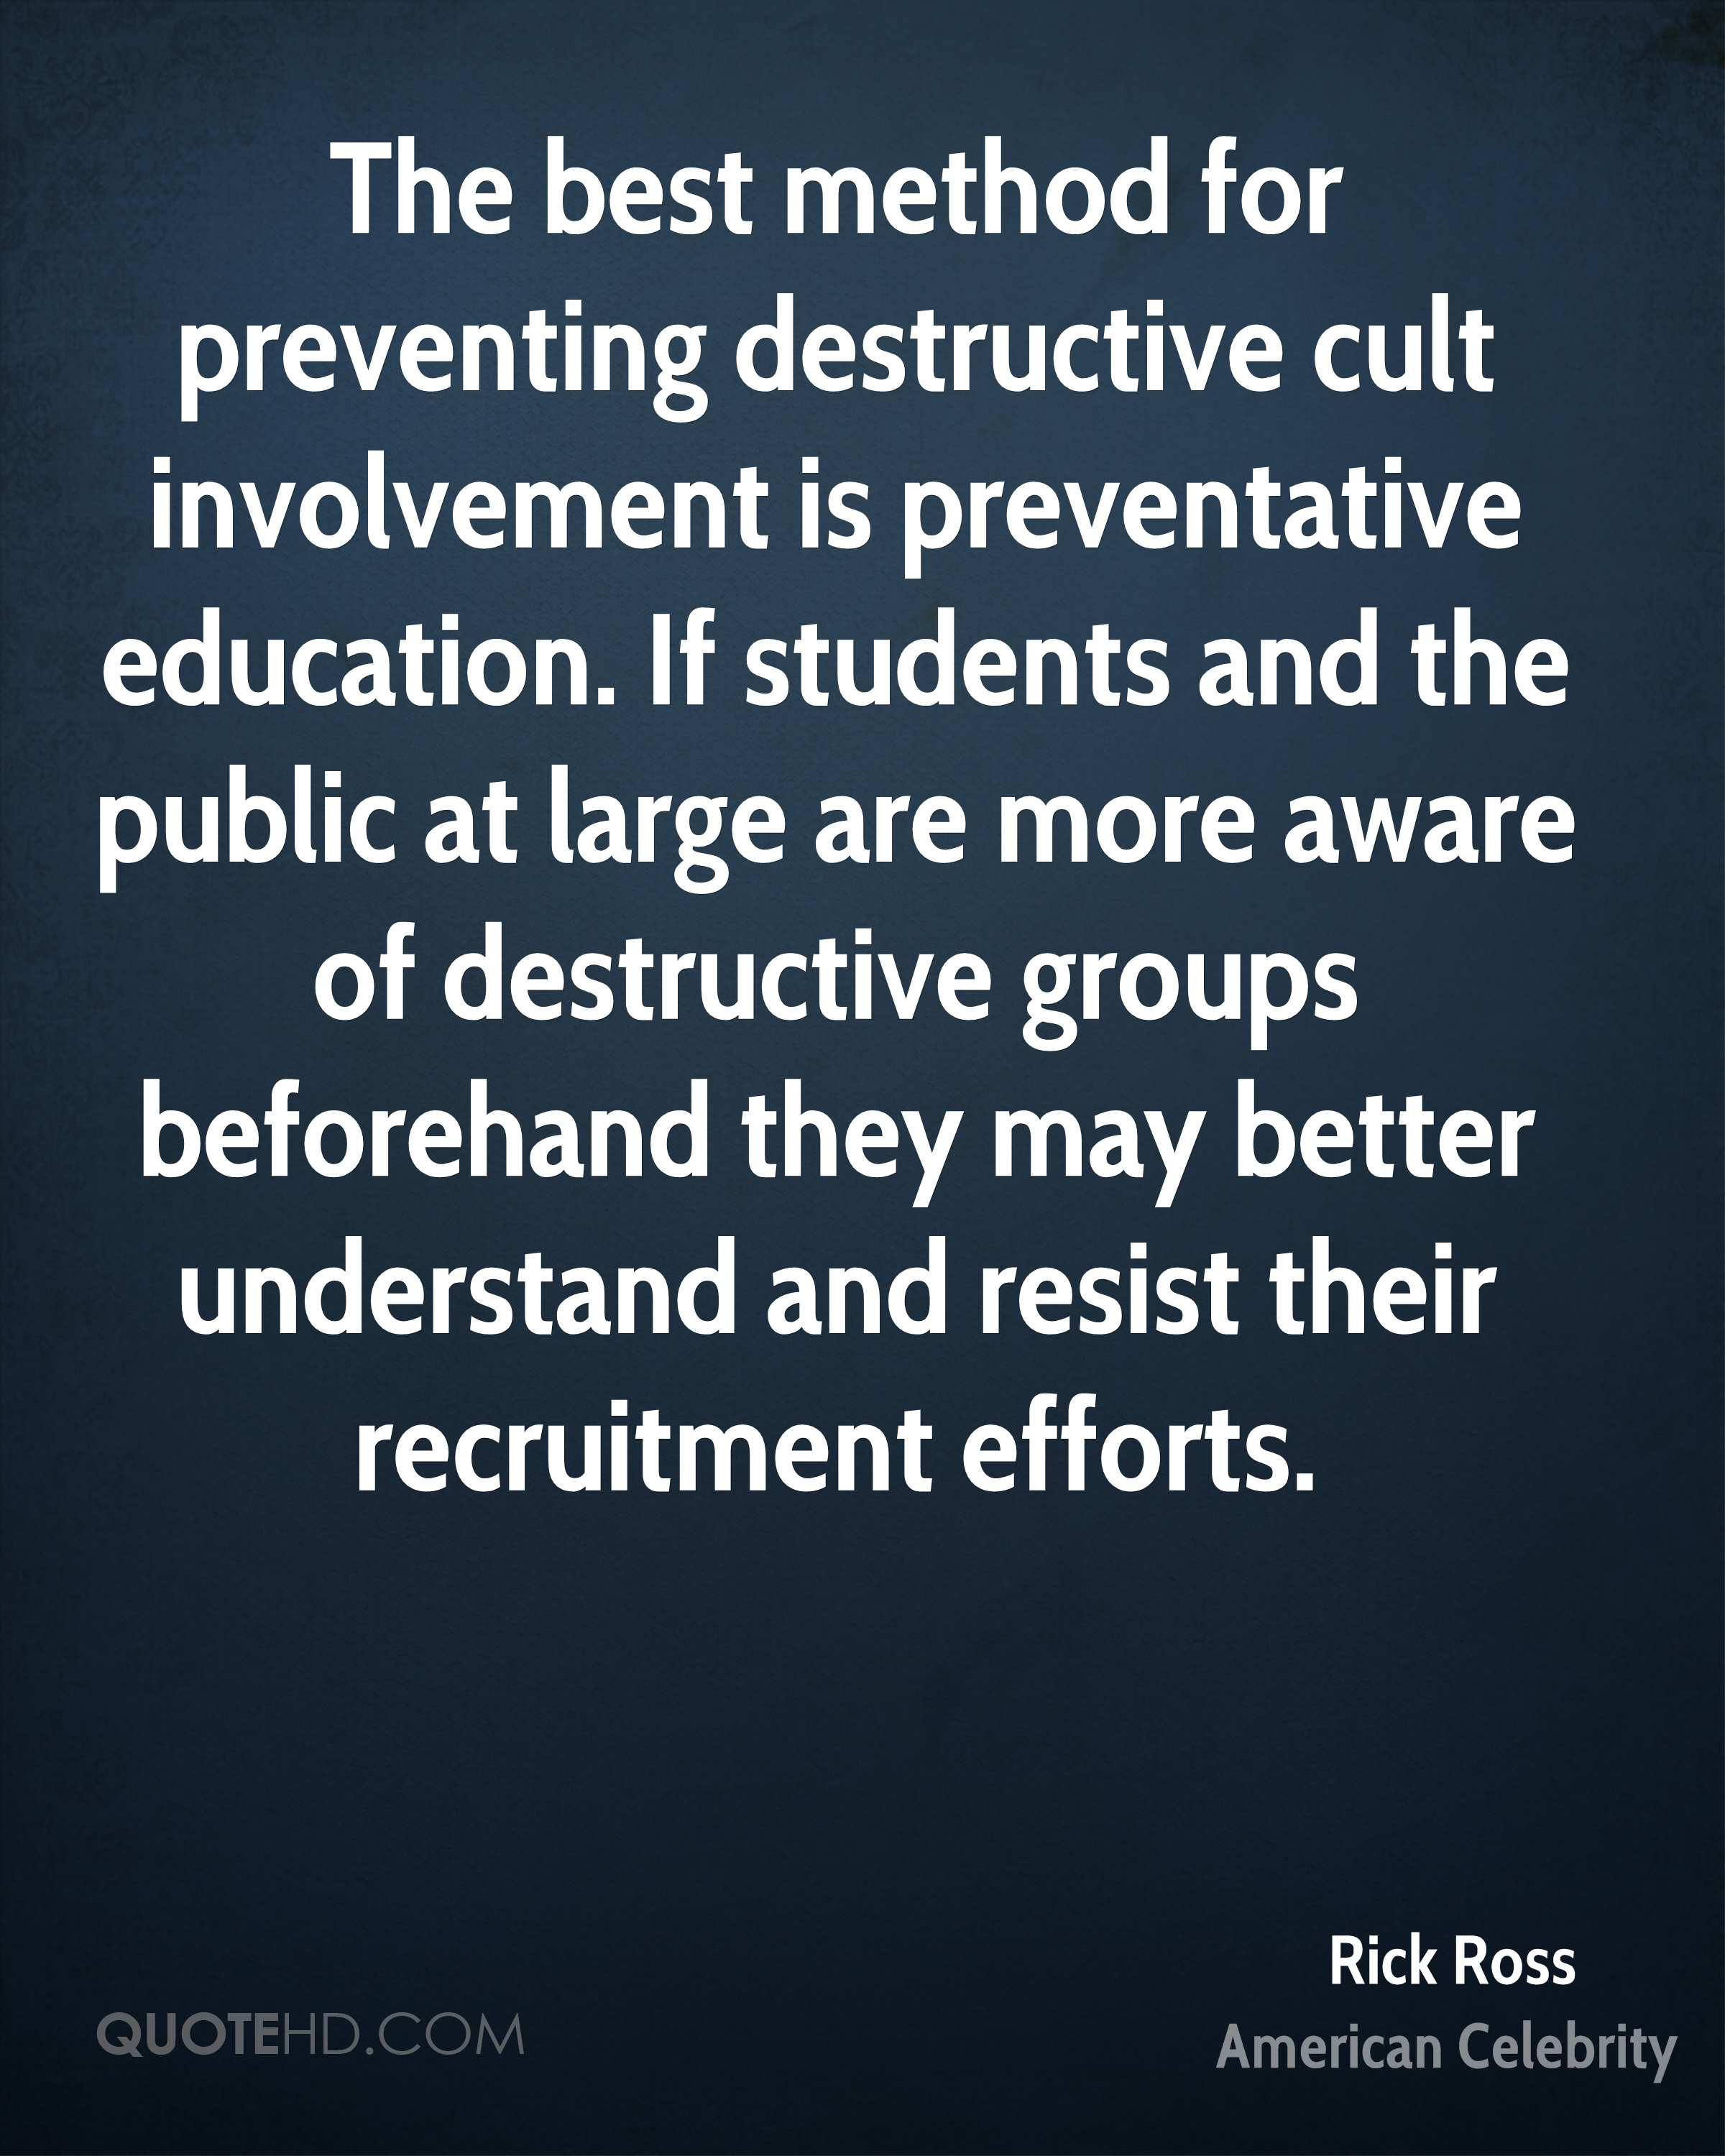 The best method for preventing destructive cult involvement is preventative education. If students and the public at large are more aware of destructive groups beforehand they may better understand and resist their recruitment efforts.